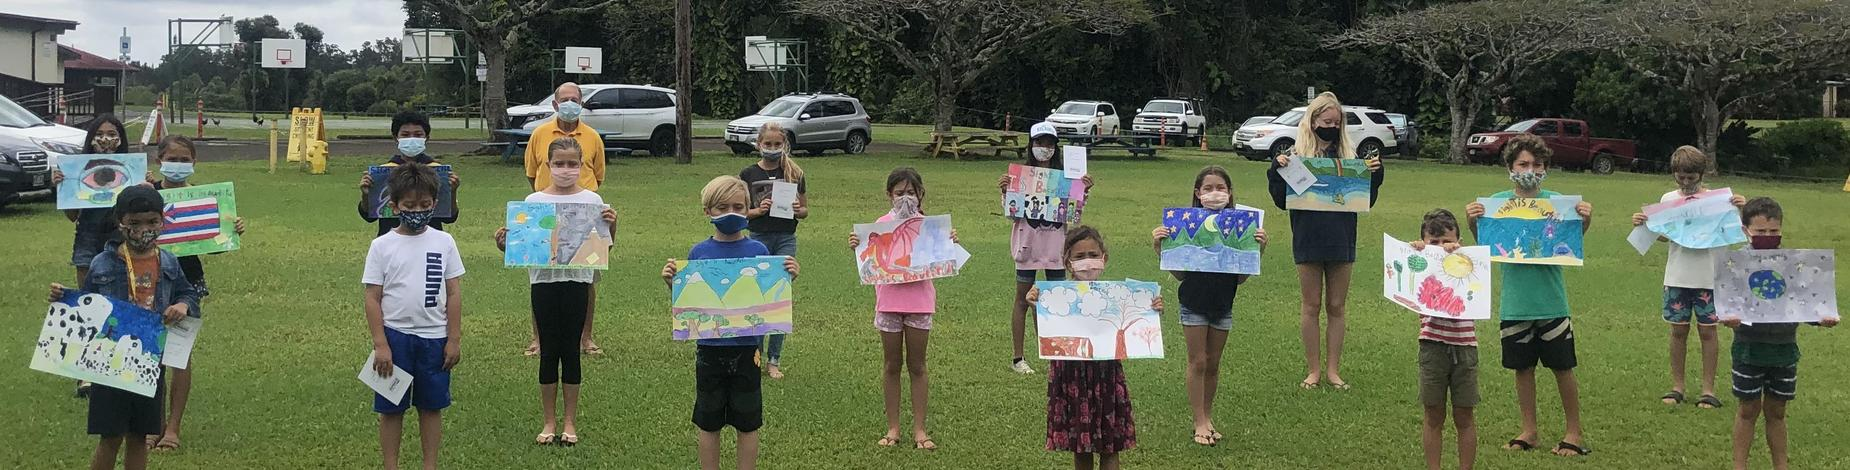 Lions Club Sight is Beautiful poster contest winners!